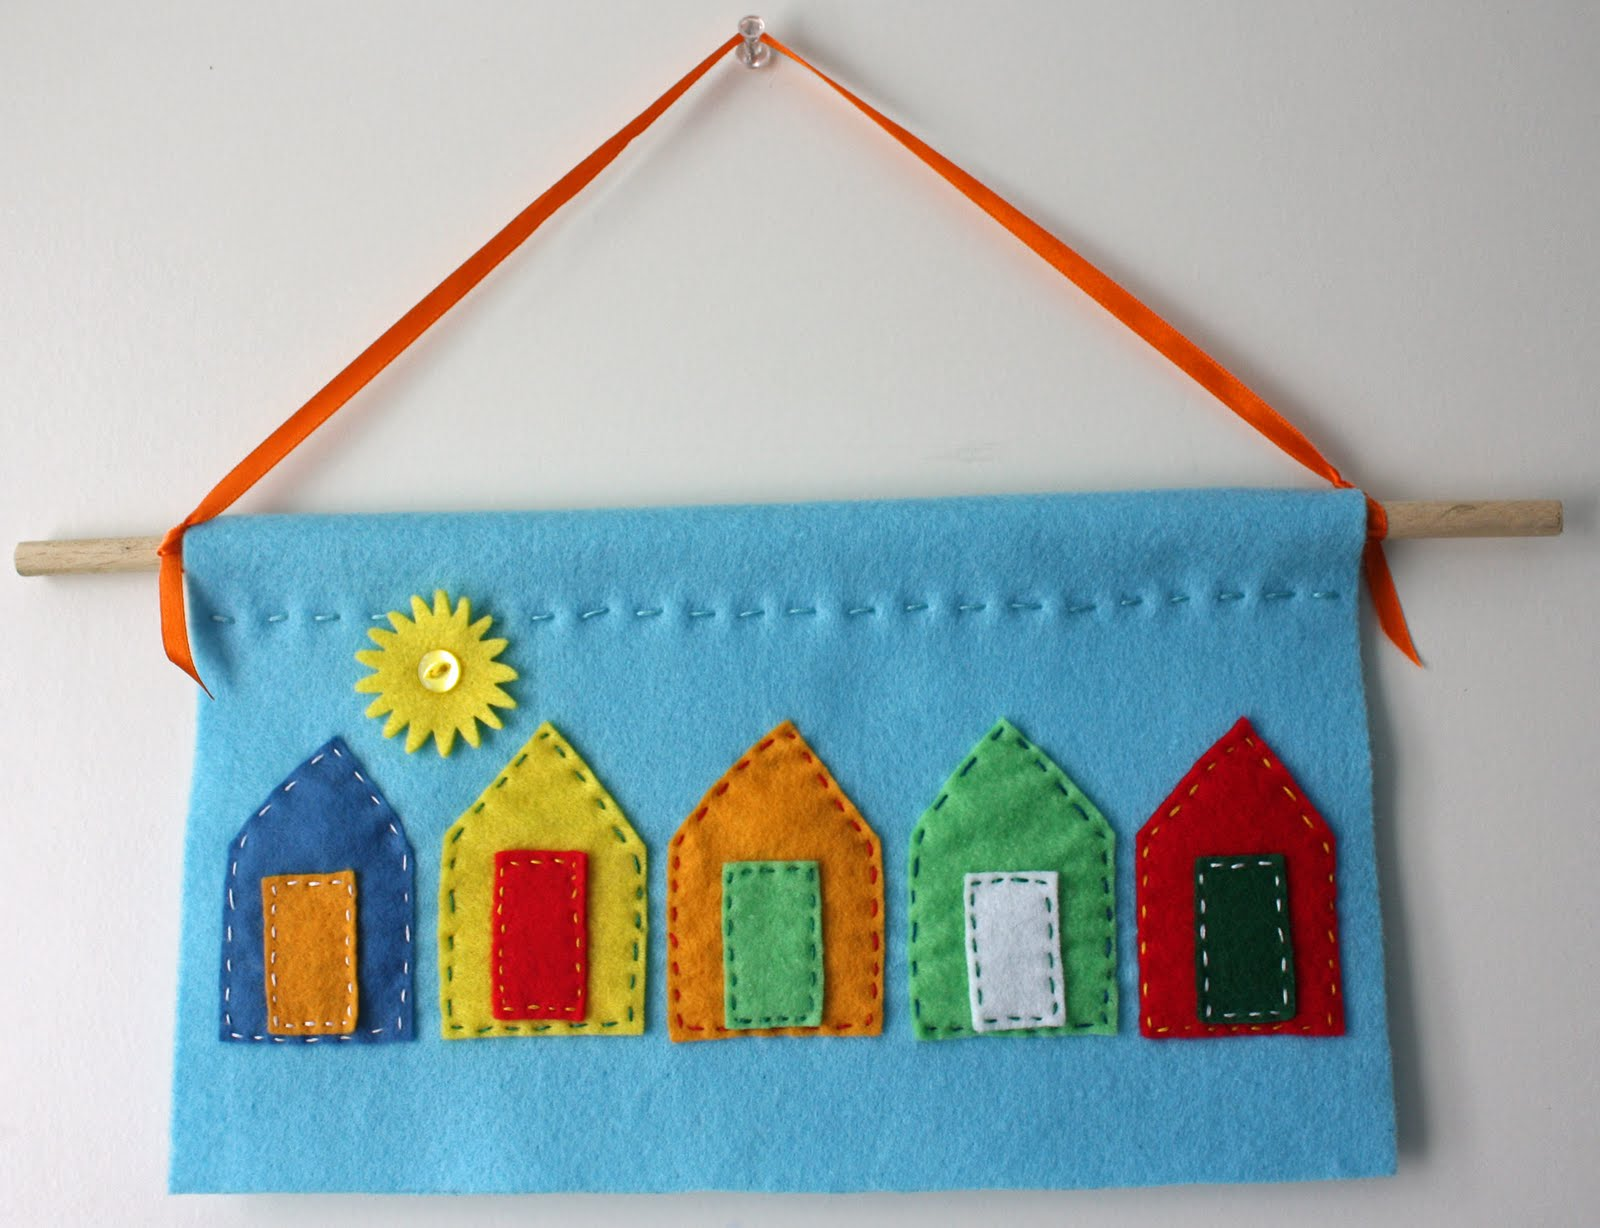 Wall Hanging Craft : Craft and Activities for All Ages!: A Felt Wall Hanging to Make ...